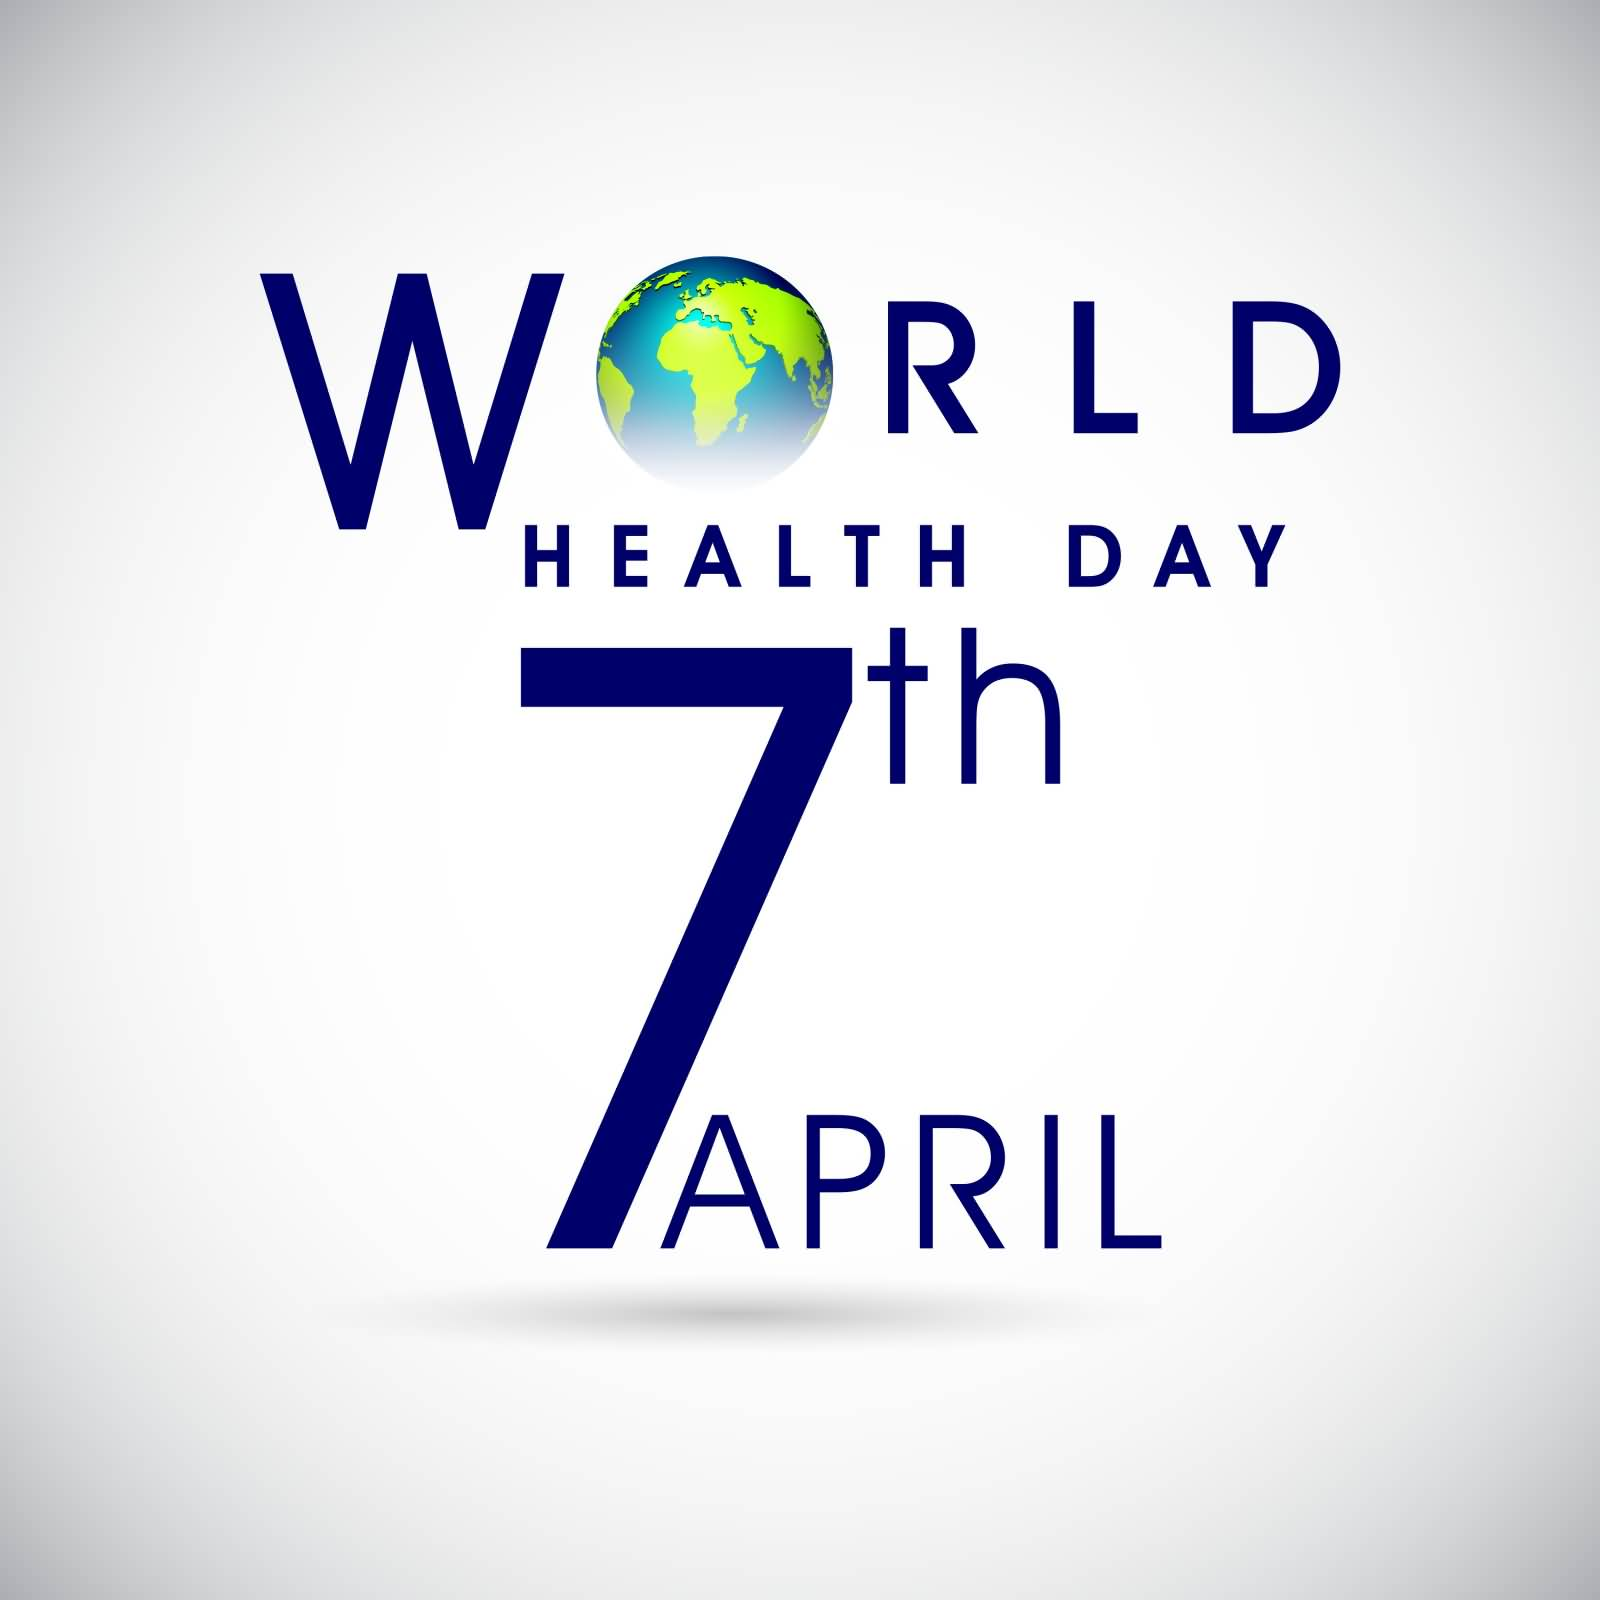 50 most beautiful world health day greeting card pictures world health day 7th april greetings card m4hsunfo